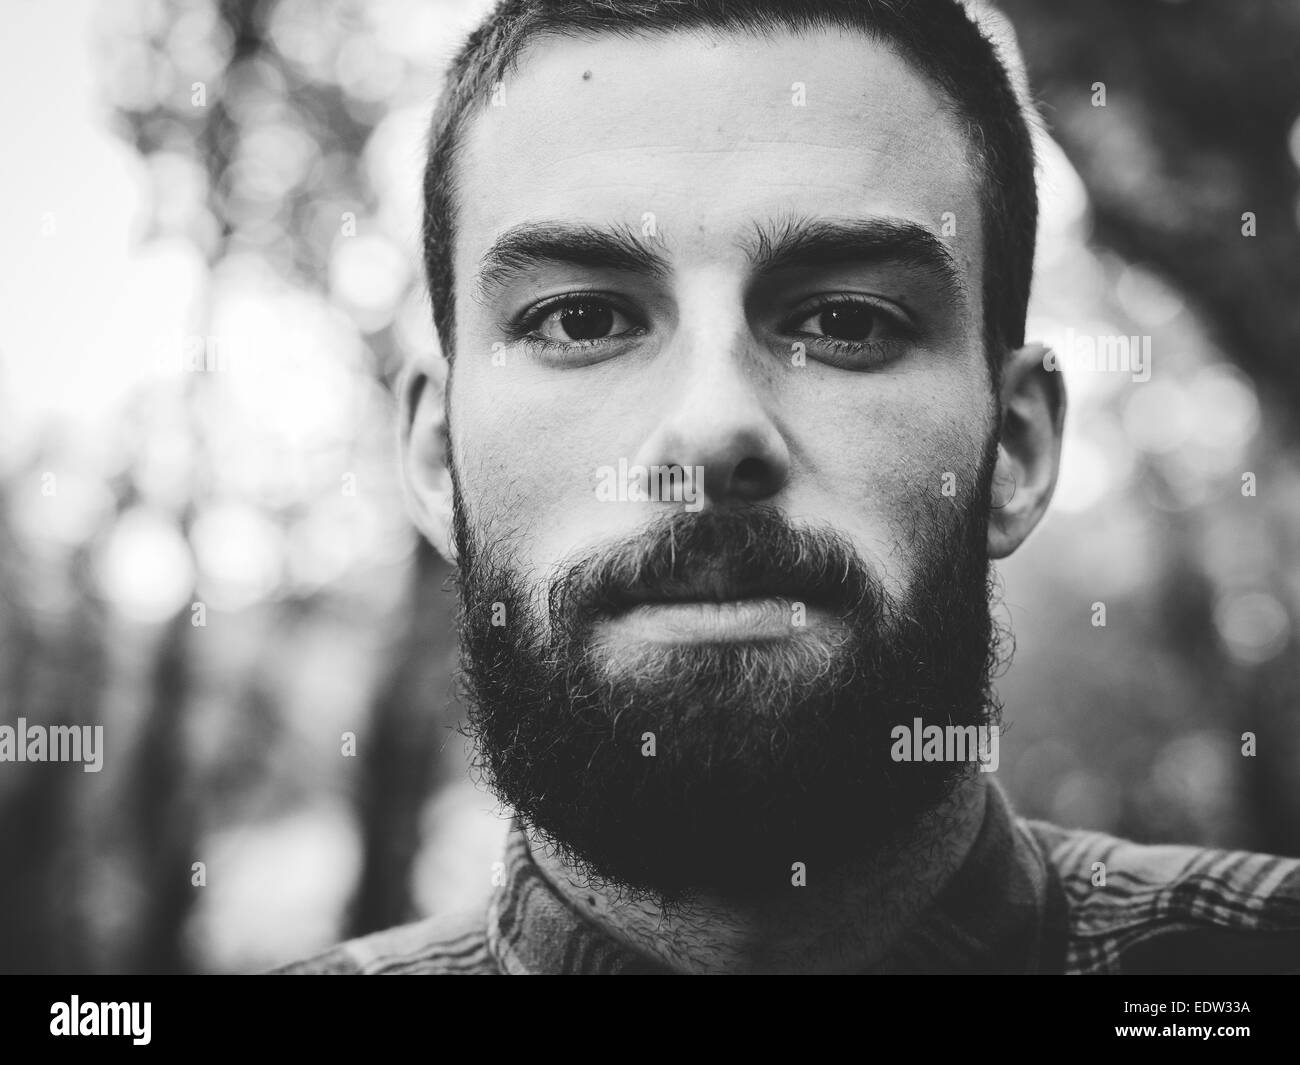 Hipster man portrait  in black and white in horizontal composition. - Stock Image